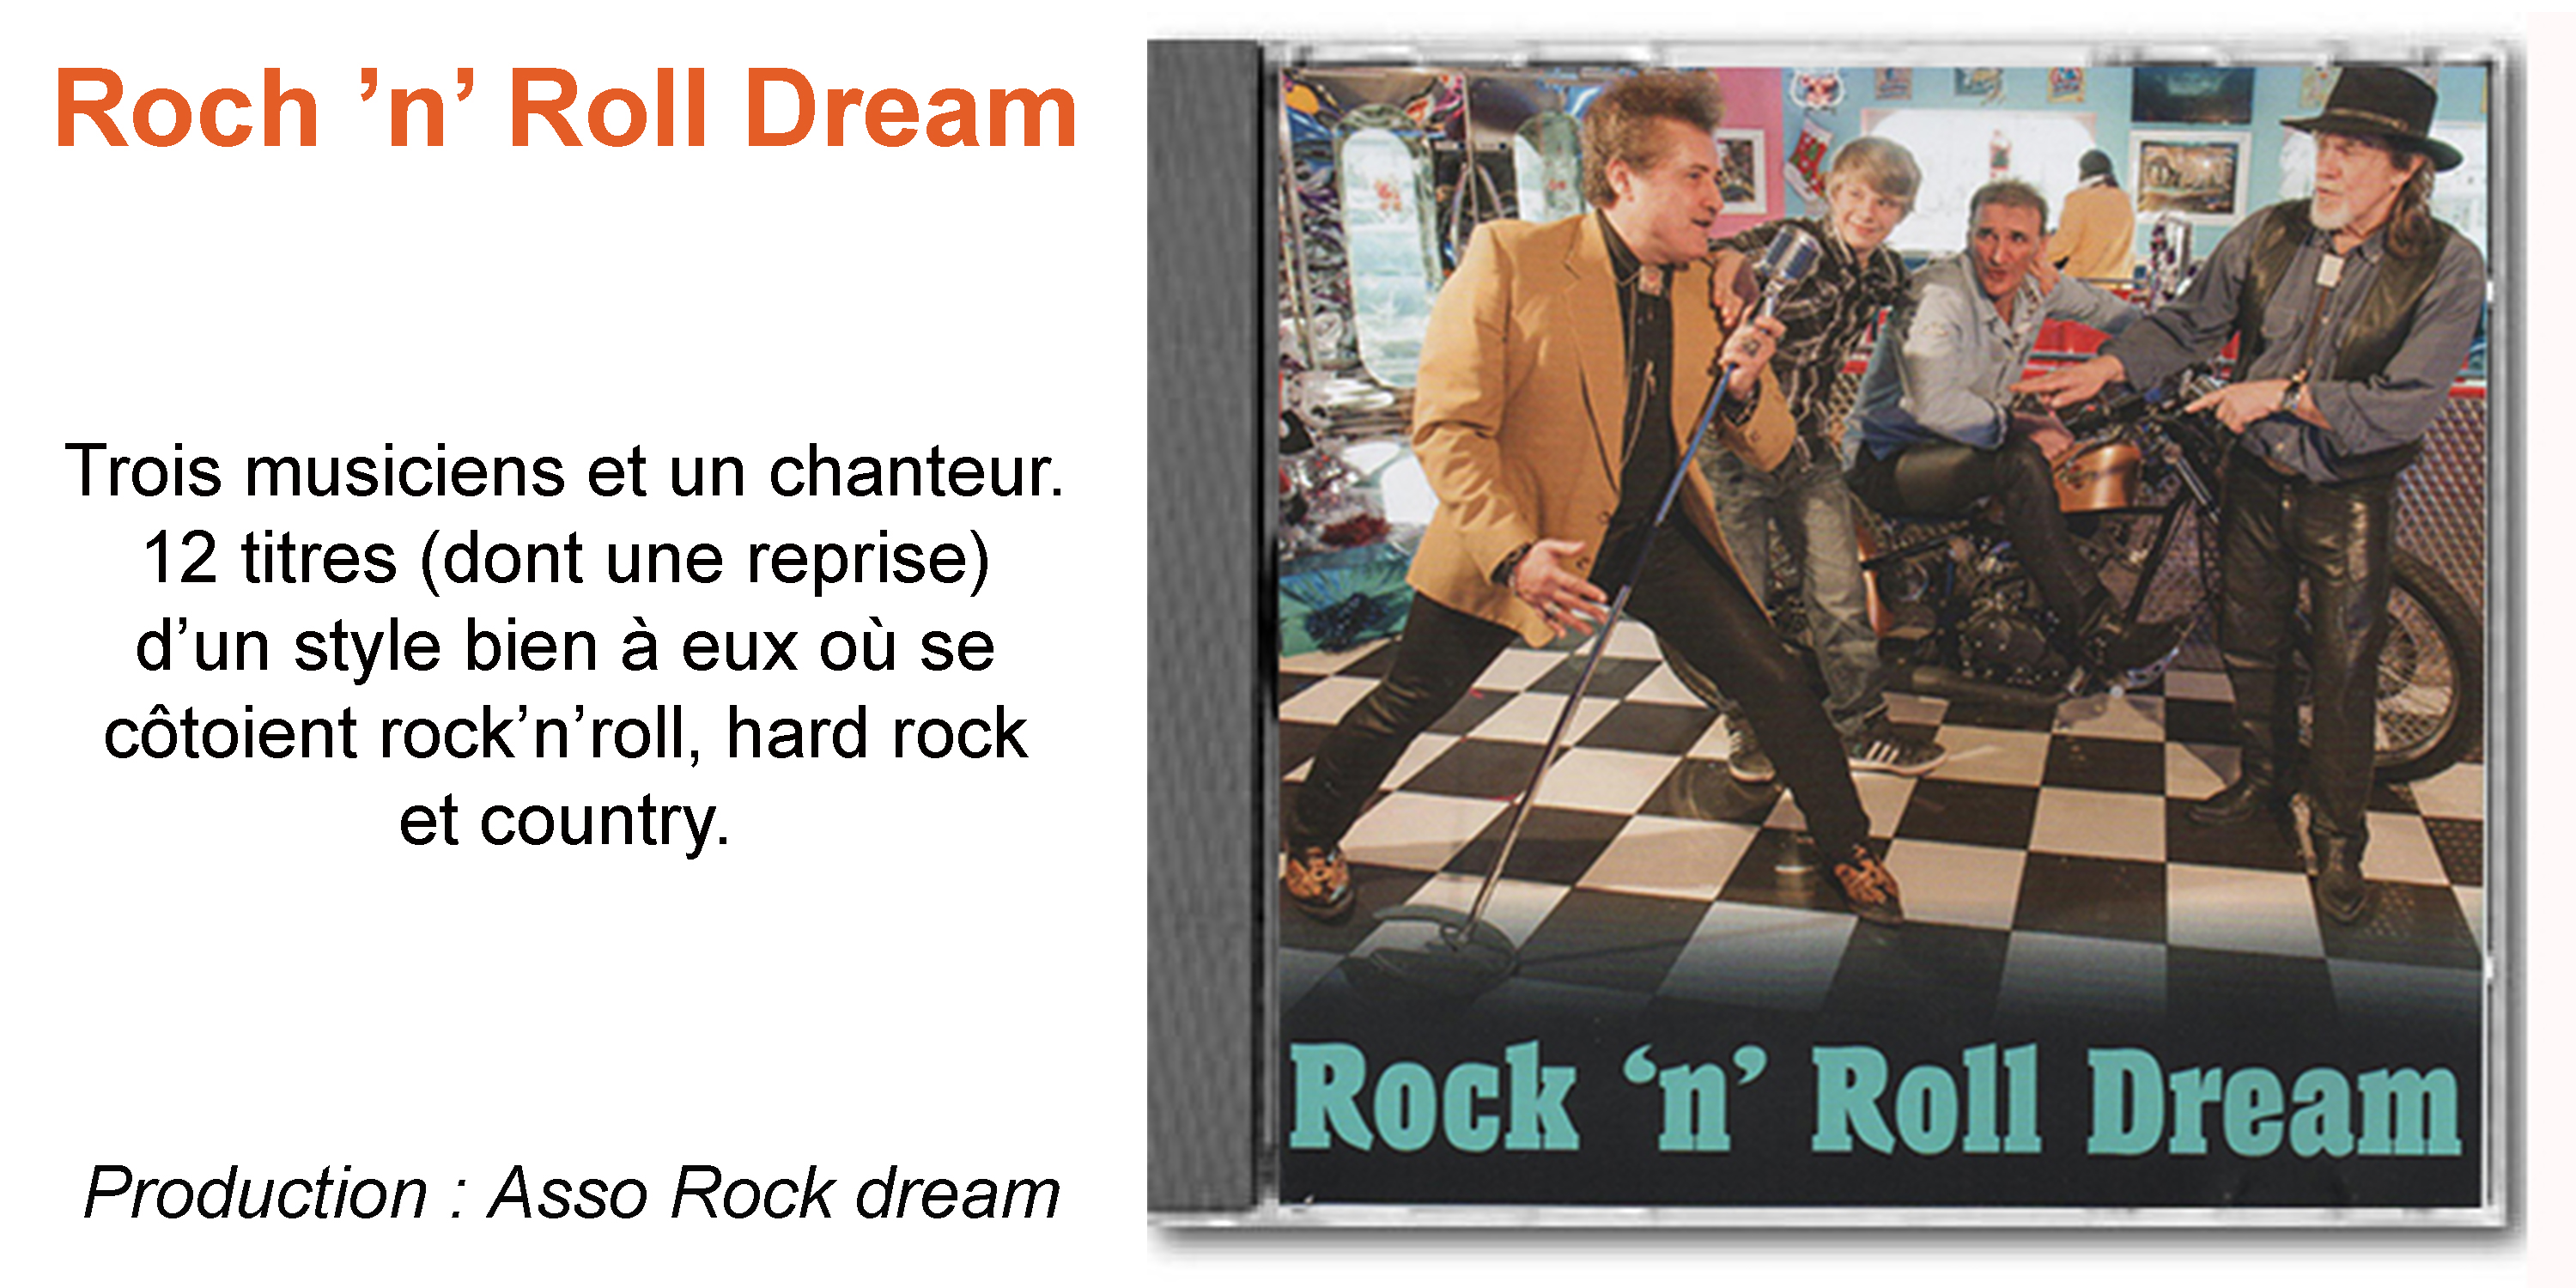 Rock 'n' roll dream